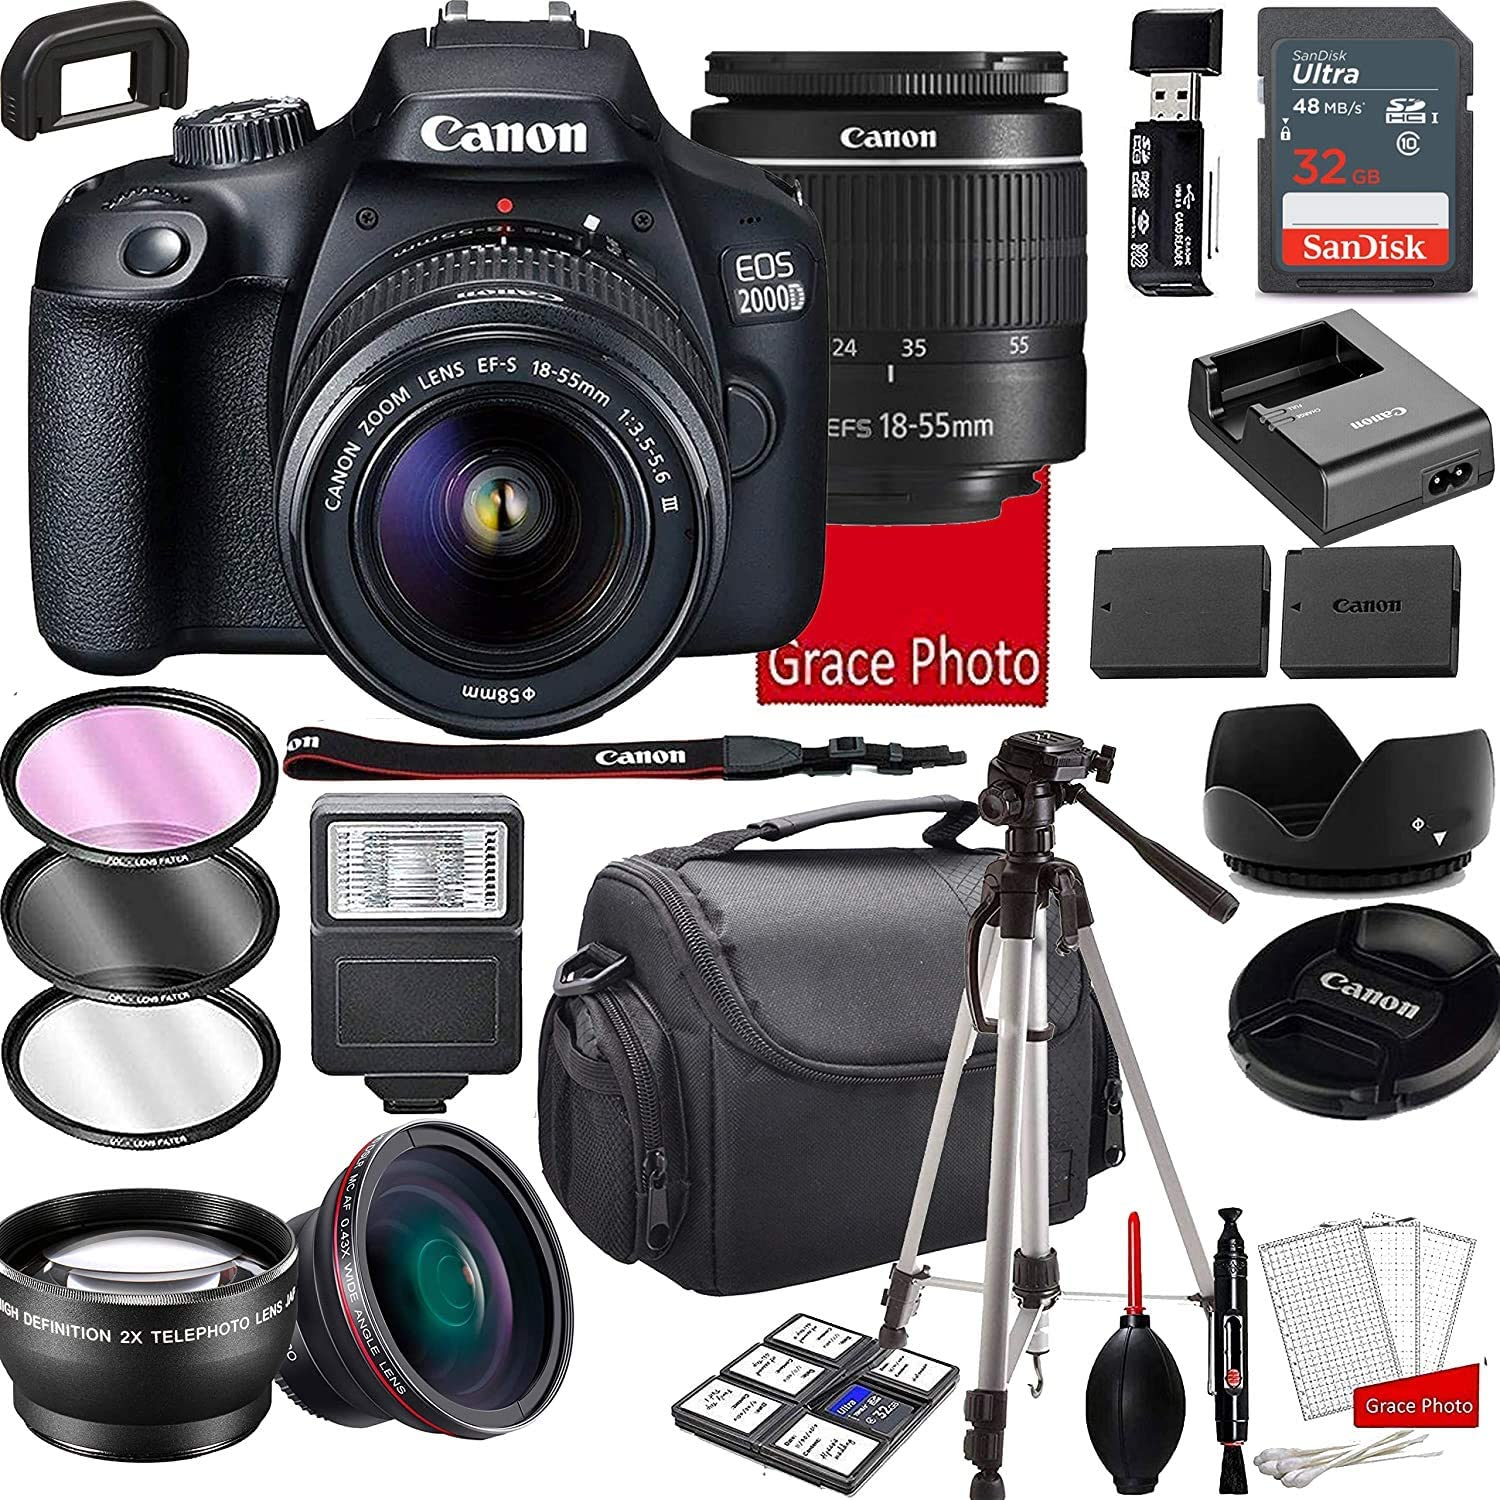 Canon EOS 2000D (Rebel T7) DSLR Camera with 18-55mm f/3.5-5.6 Zoom Lens, 32GB Memory, Shoulder Case, Tripod and Accessories (28pc Bundle)